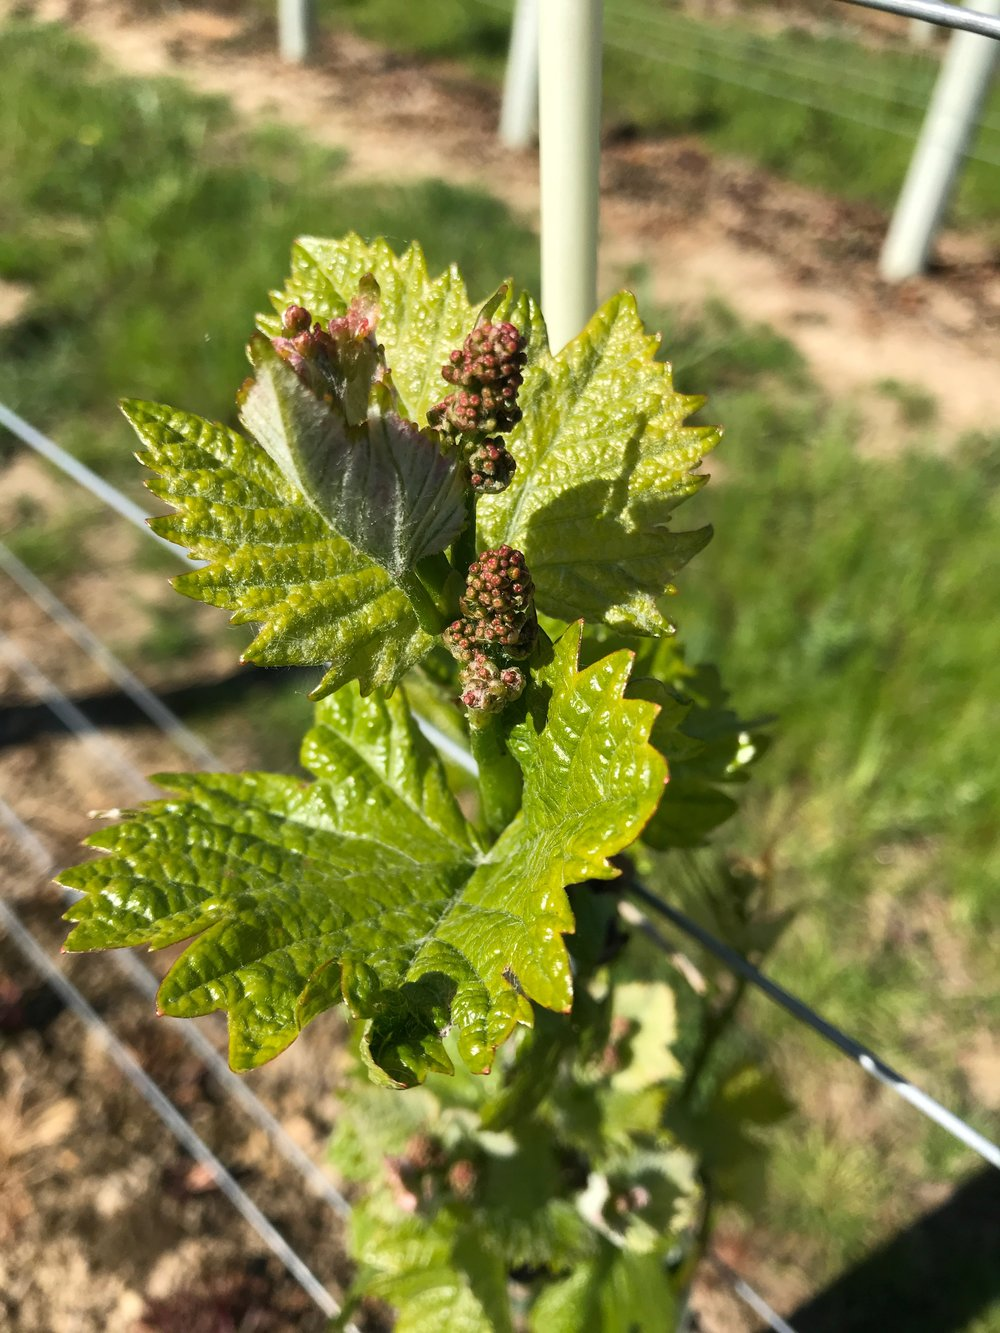 Inflorescences are now visible and developing. All being well, later in the season they will flower and develop into our first grape clusters!